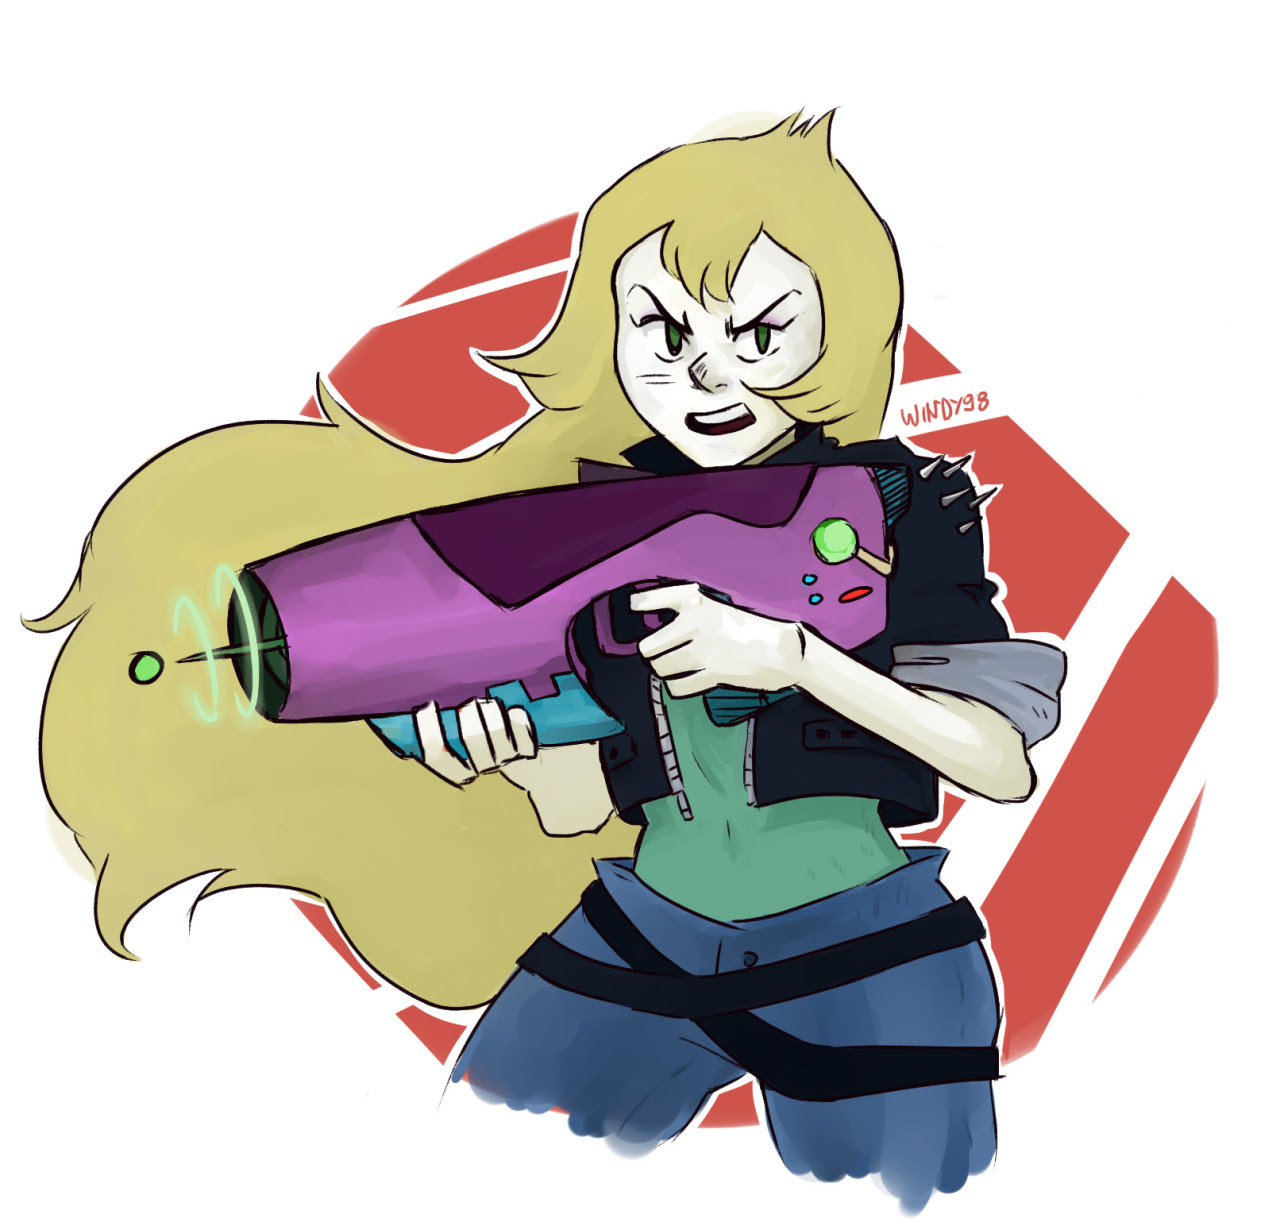 I like to think that Vidalia helped the cristal gems when they had to fight against some crazy shit. And she fought with amazing tech that she made! 'Cause she's a badass obviously.